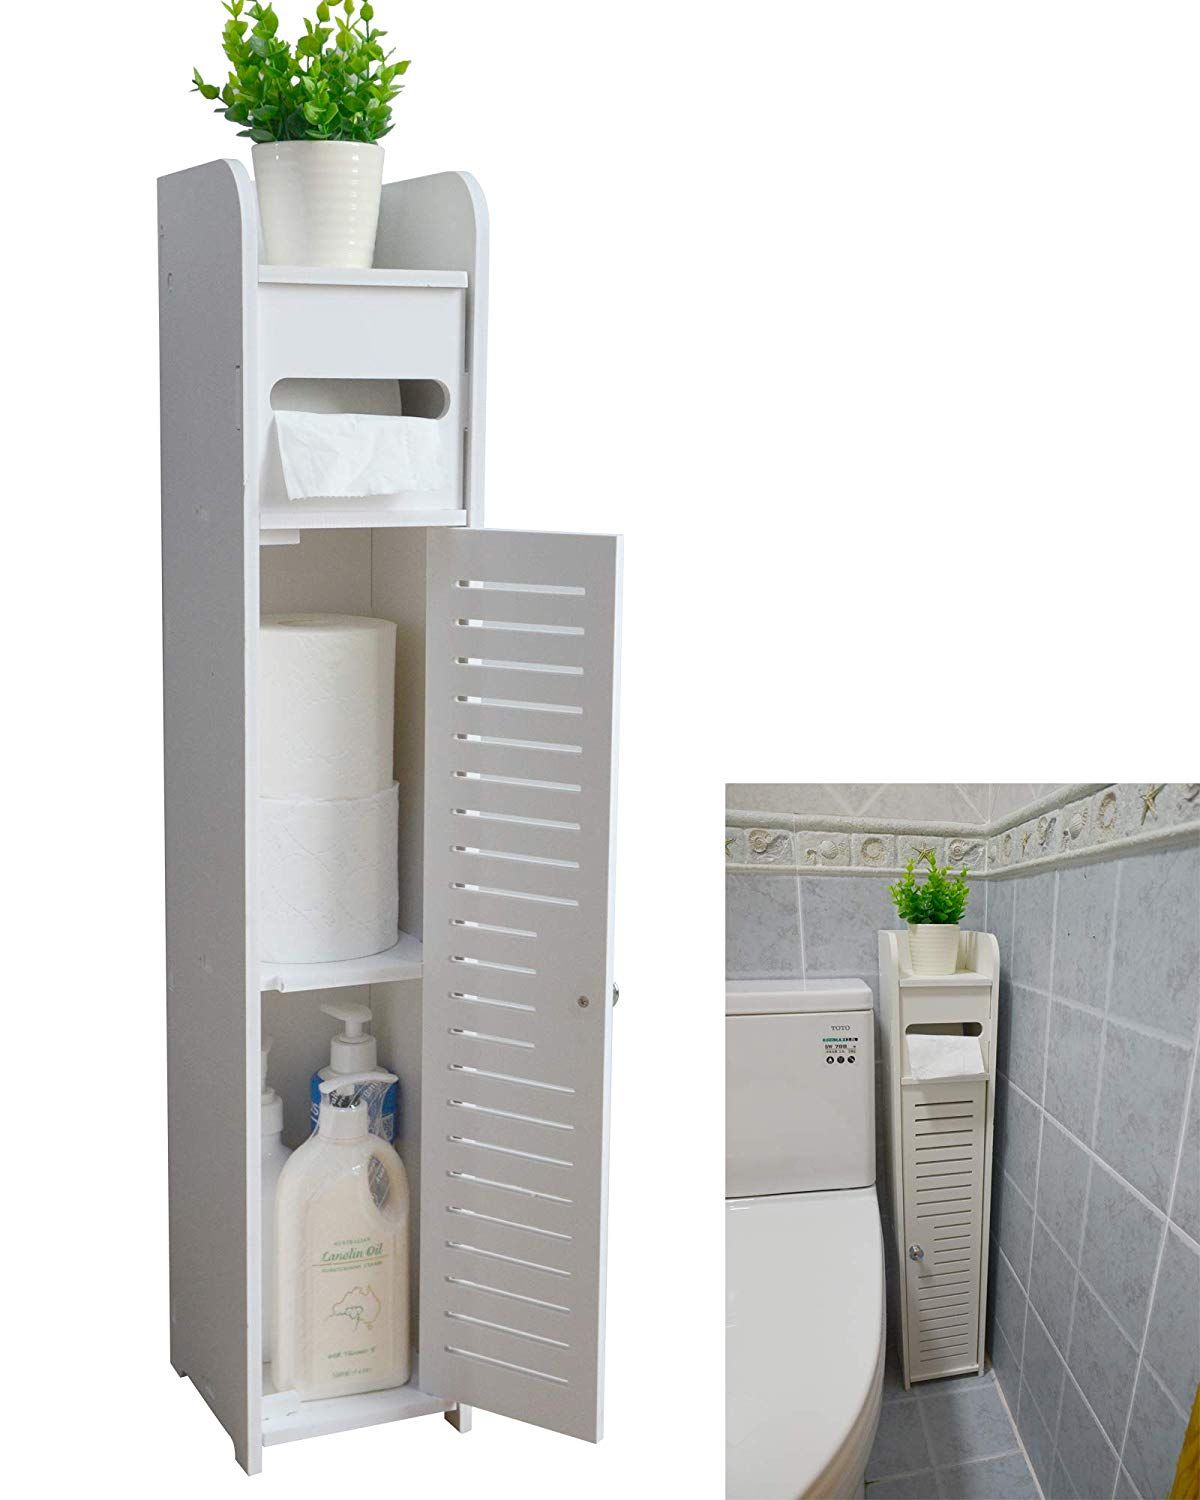 Photo of Aojezor Small Bathroom Storage Corner Floor Cabinet with Doors and Shelves, Thin…